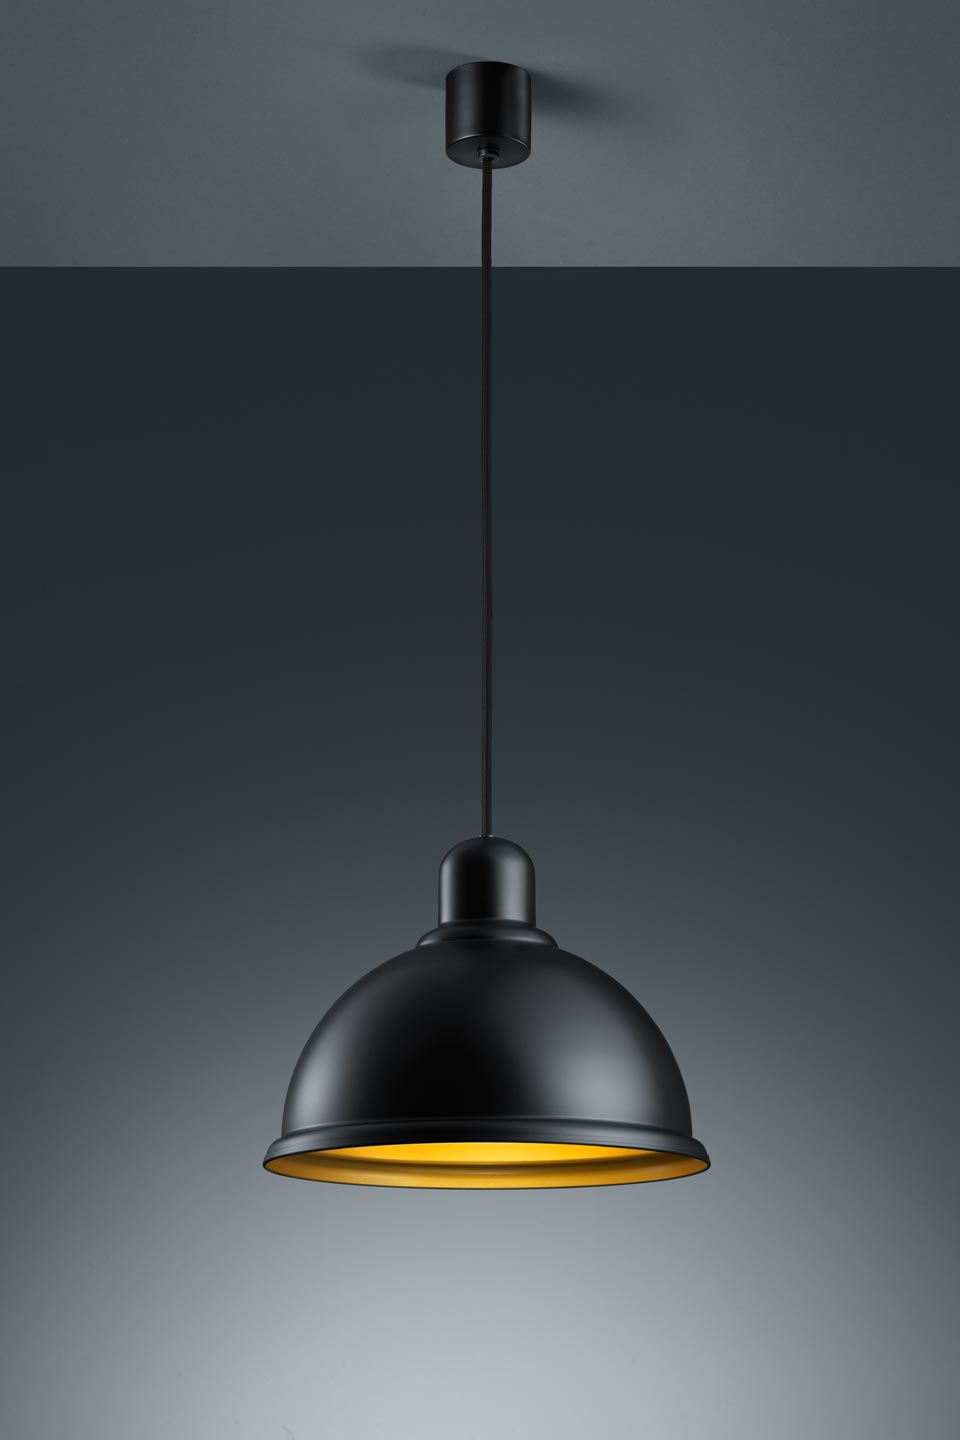 Suspension en m tal noir mat style industriel baulmann for Luminaire suspension industriel